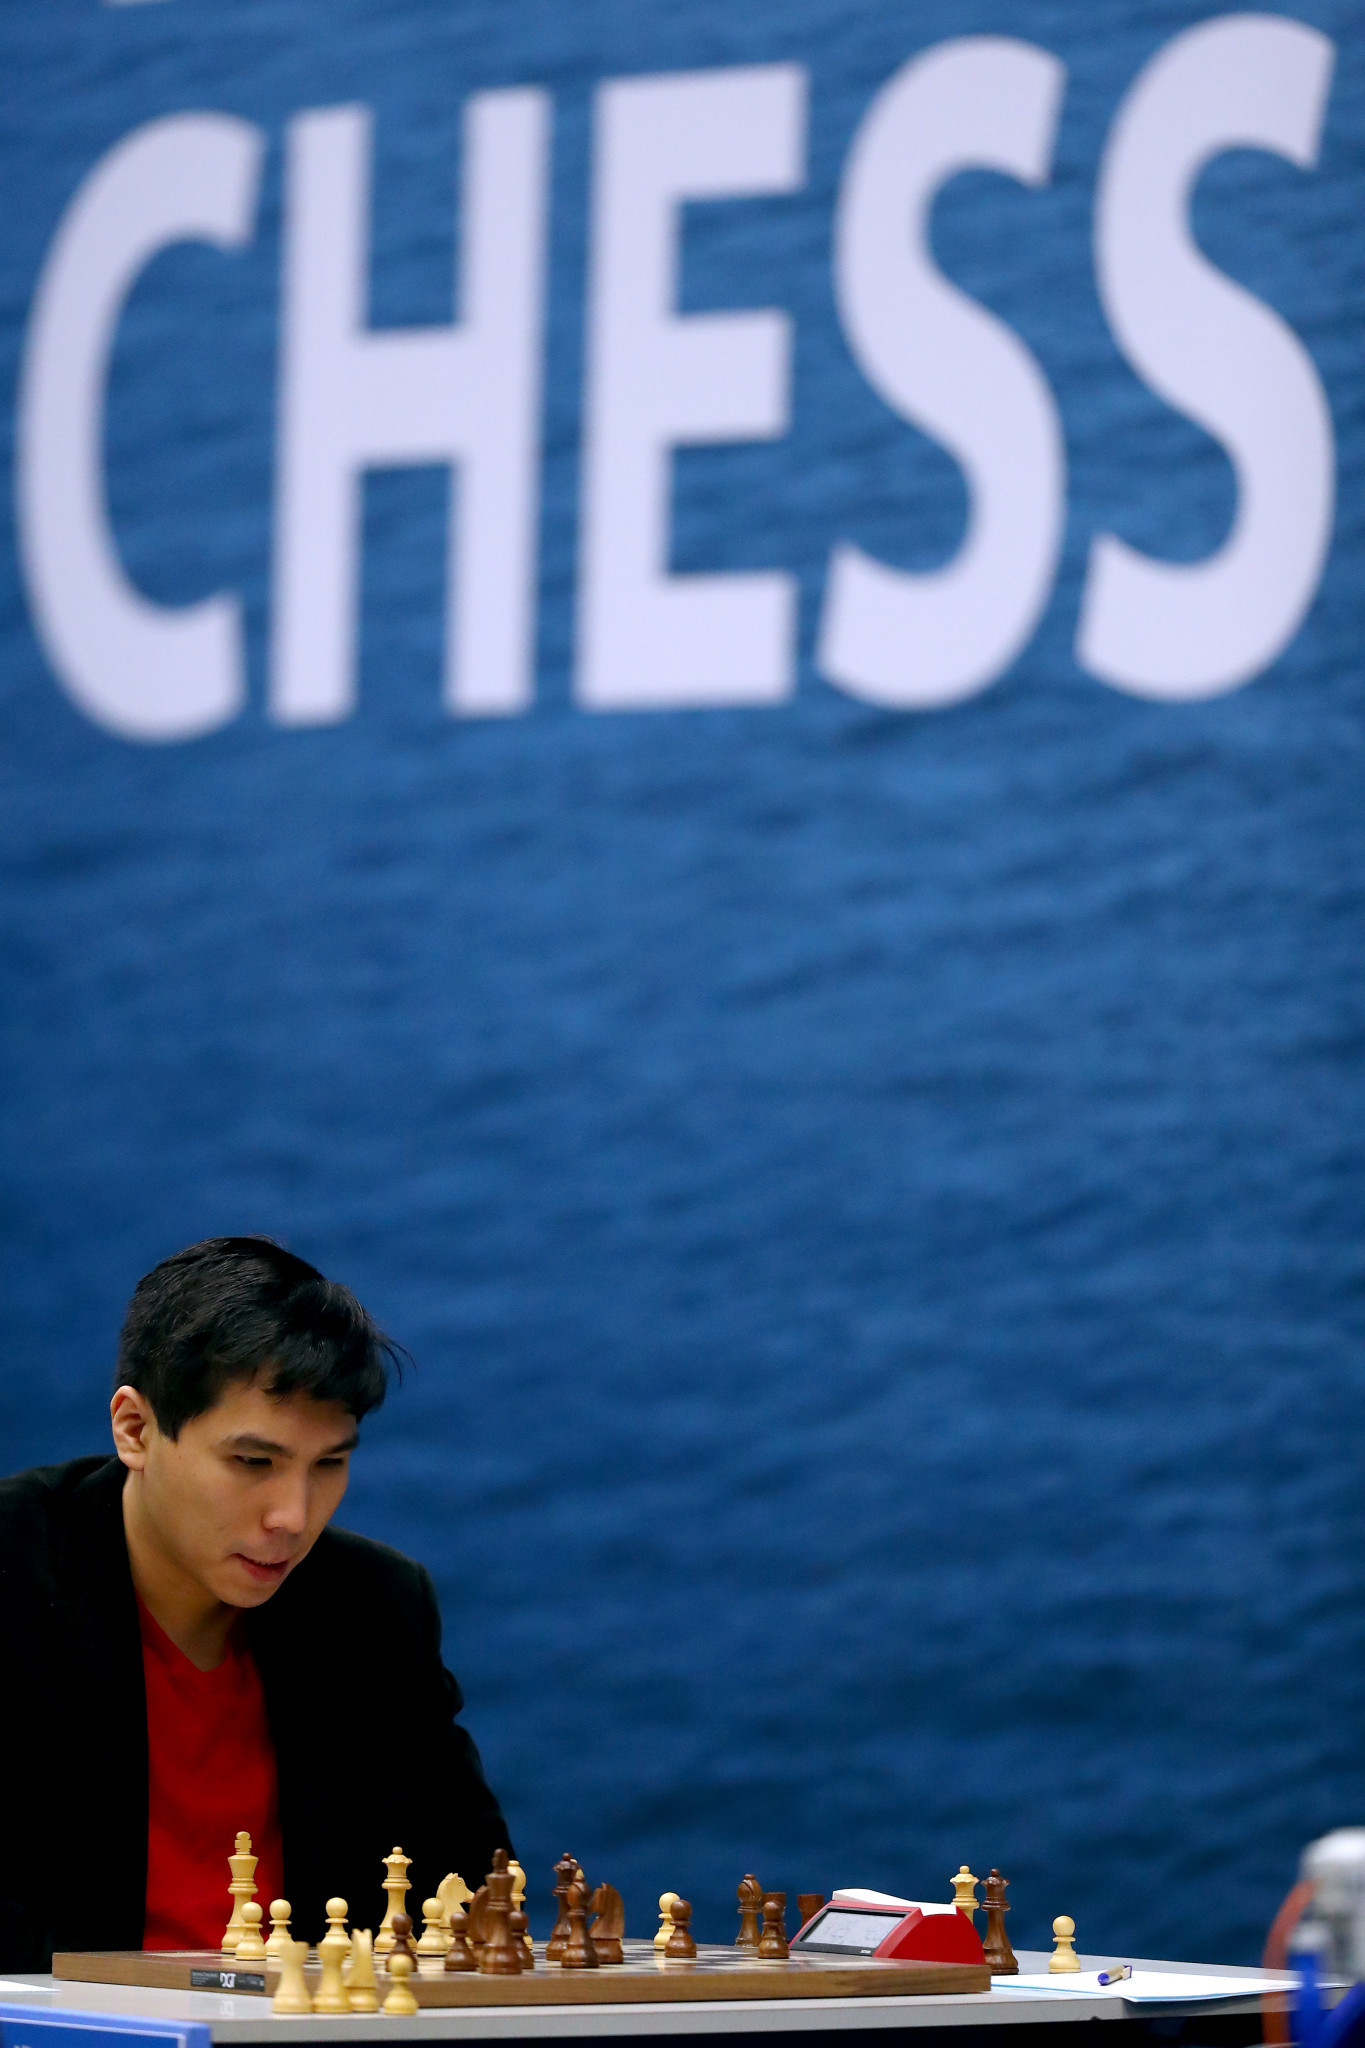 A new FIDE Charter for chess will be the main talking point ©Getty Images